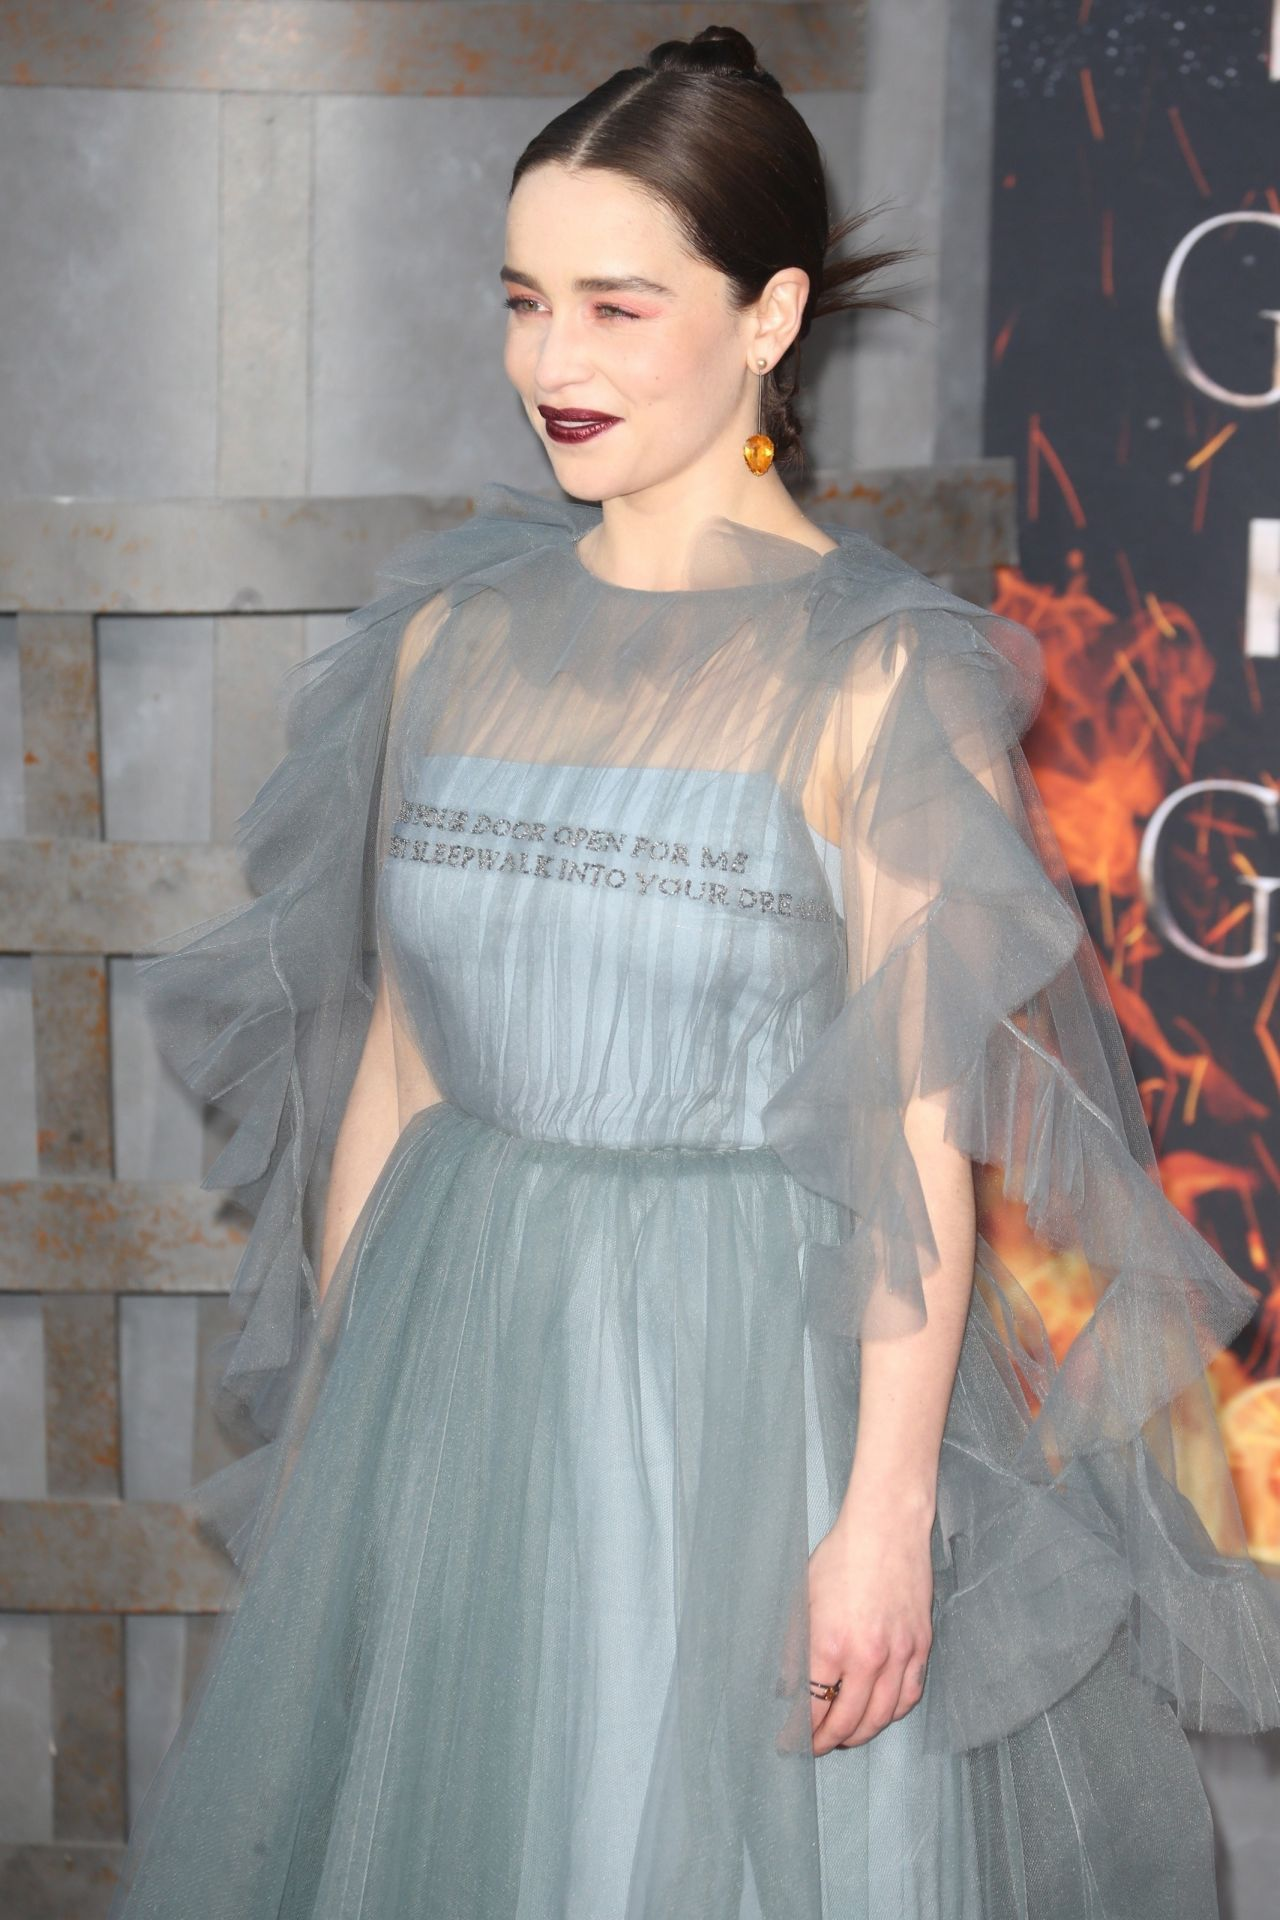 Emilia Clarke Quot Game Of Thrones Quot Season 8 Premiere In Ny